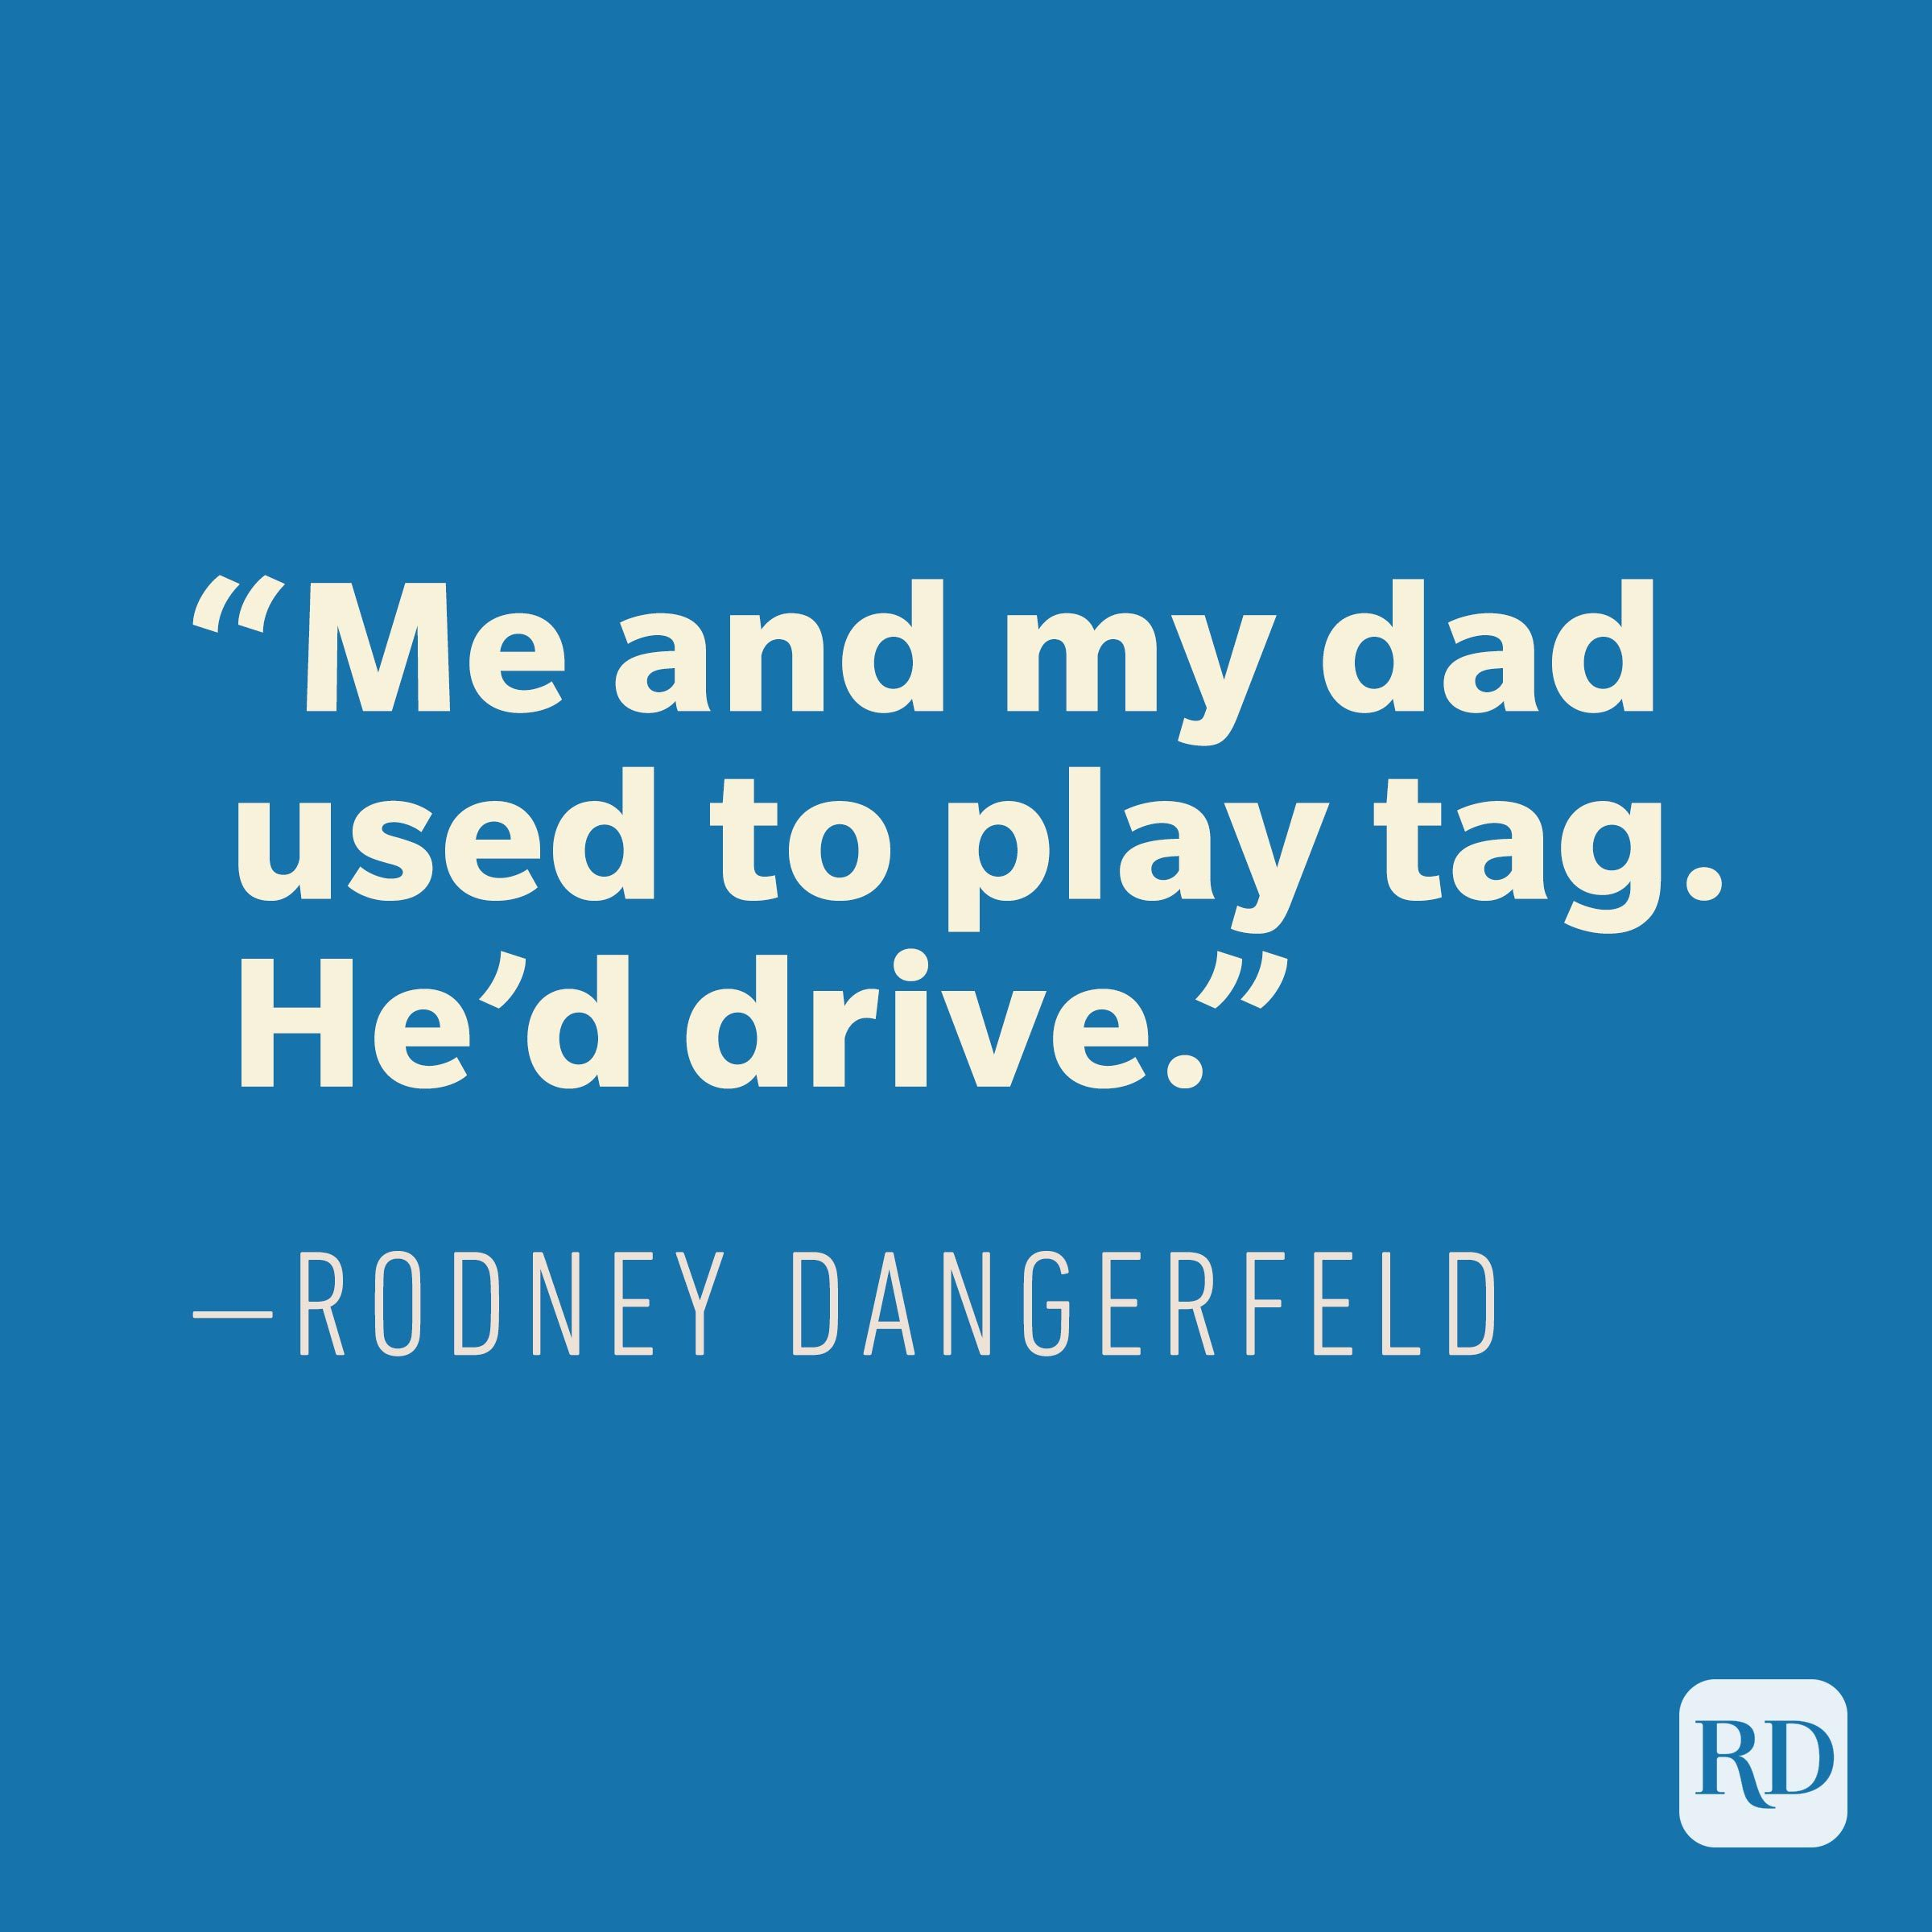 """Me and my dad used to play tag. He'd drive."" —Rodney Dangerfield"